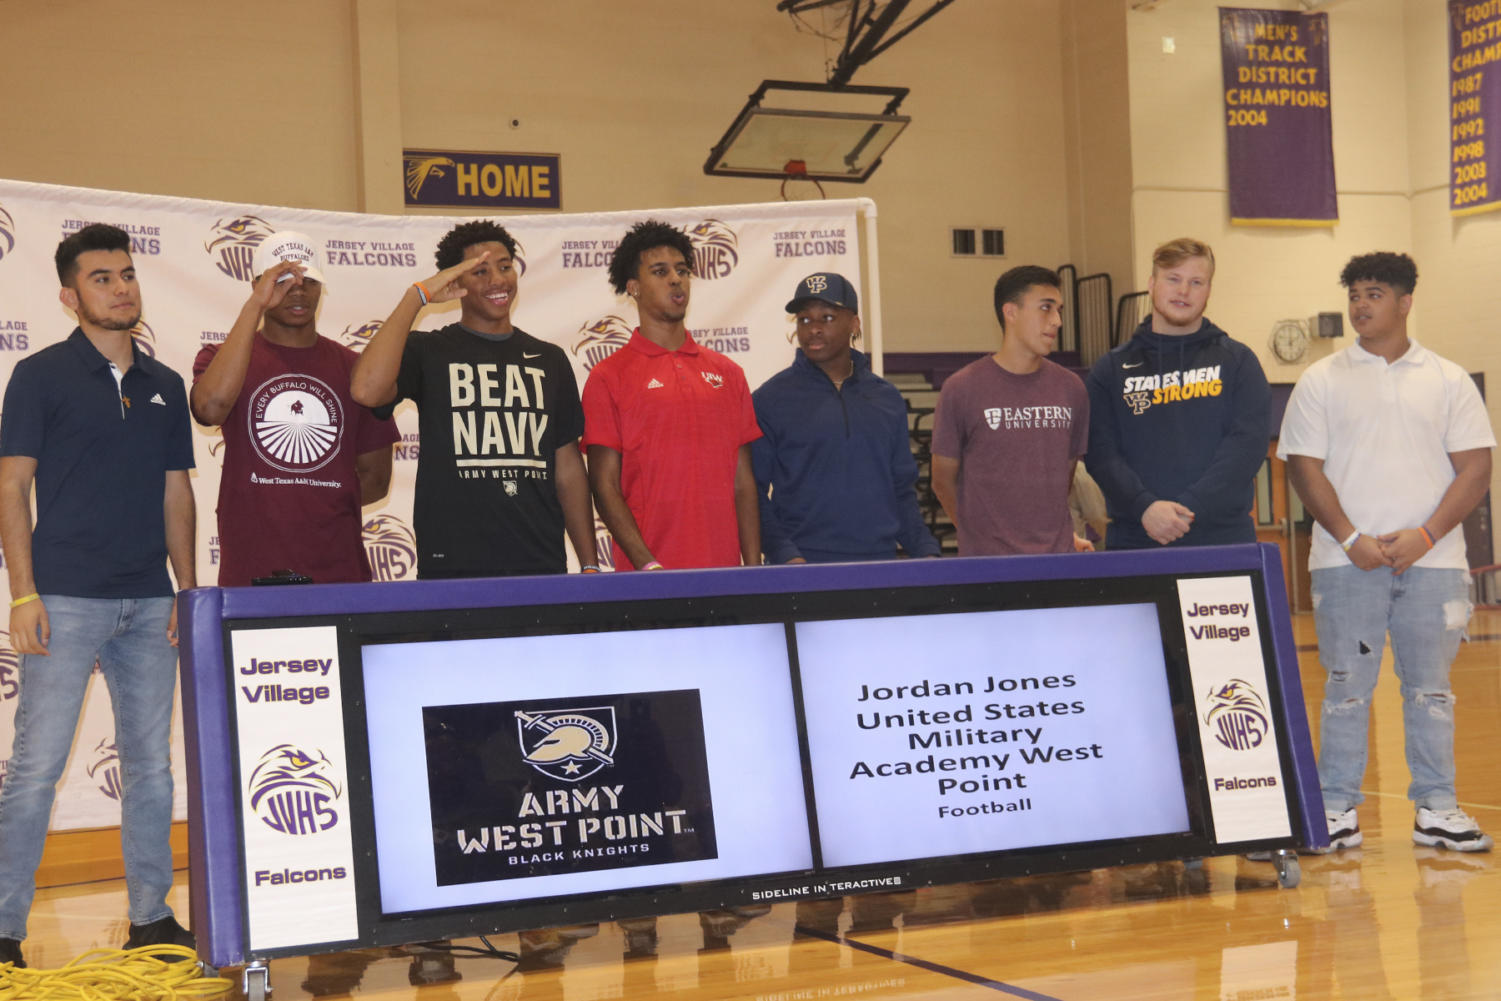 Eight athletes sign today on National Signing Day to play football and soccer for schools across the U.S.